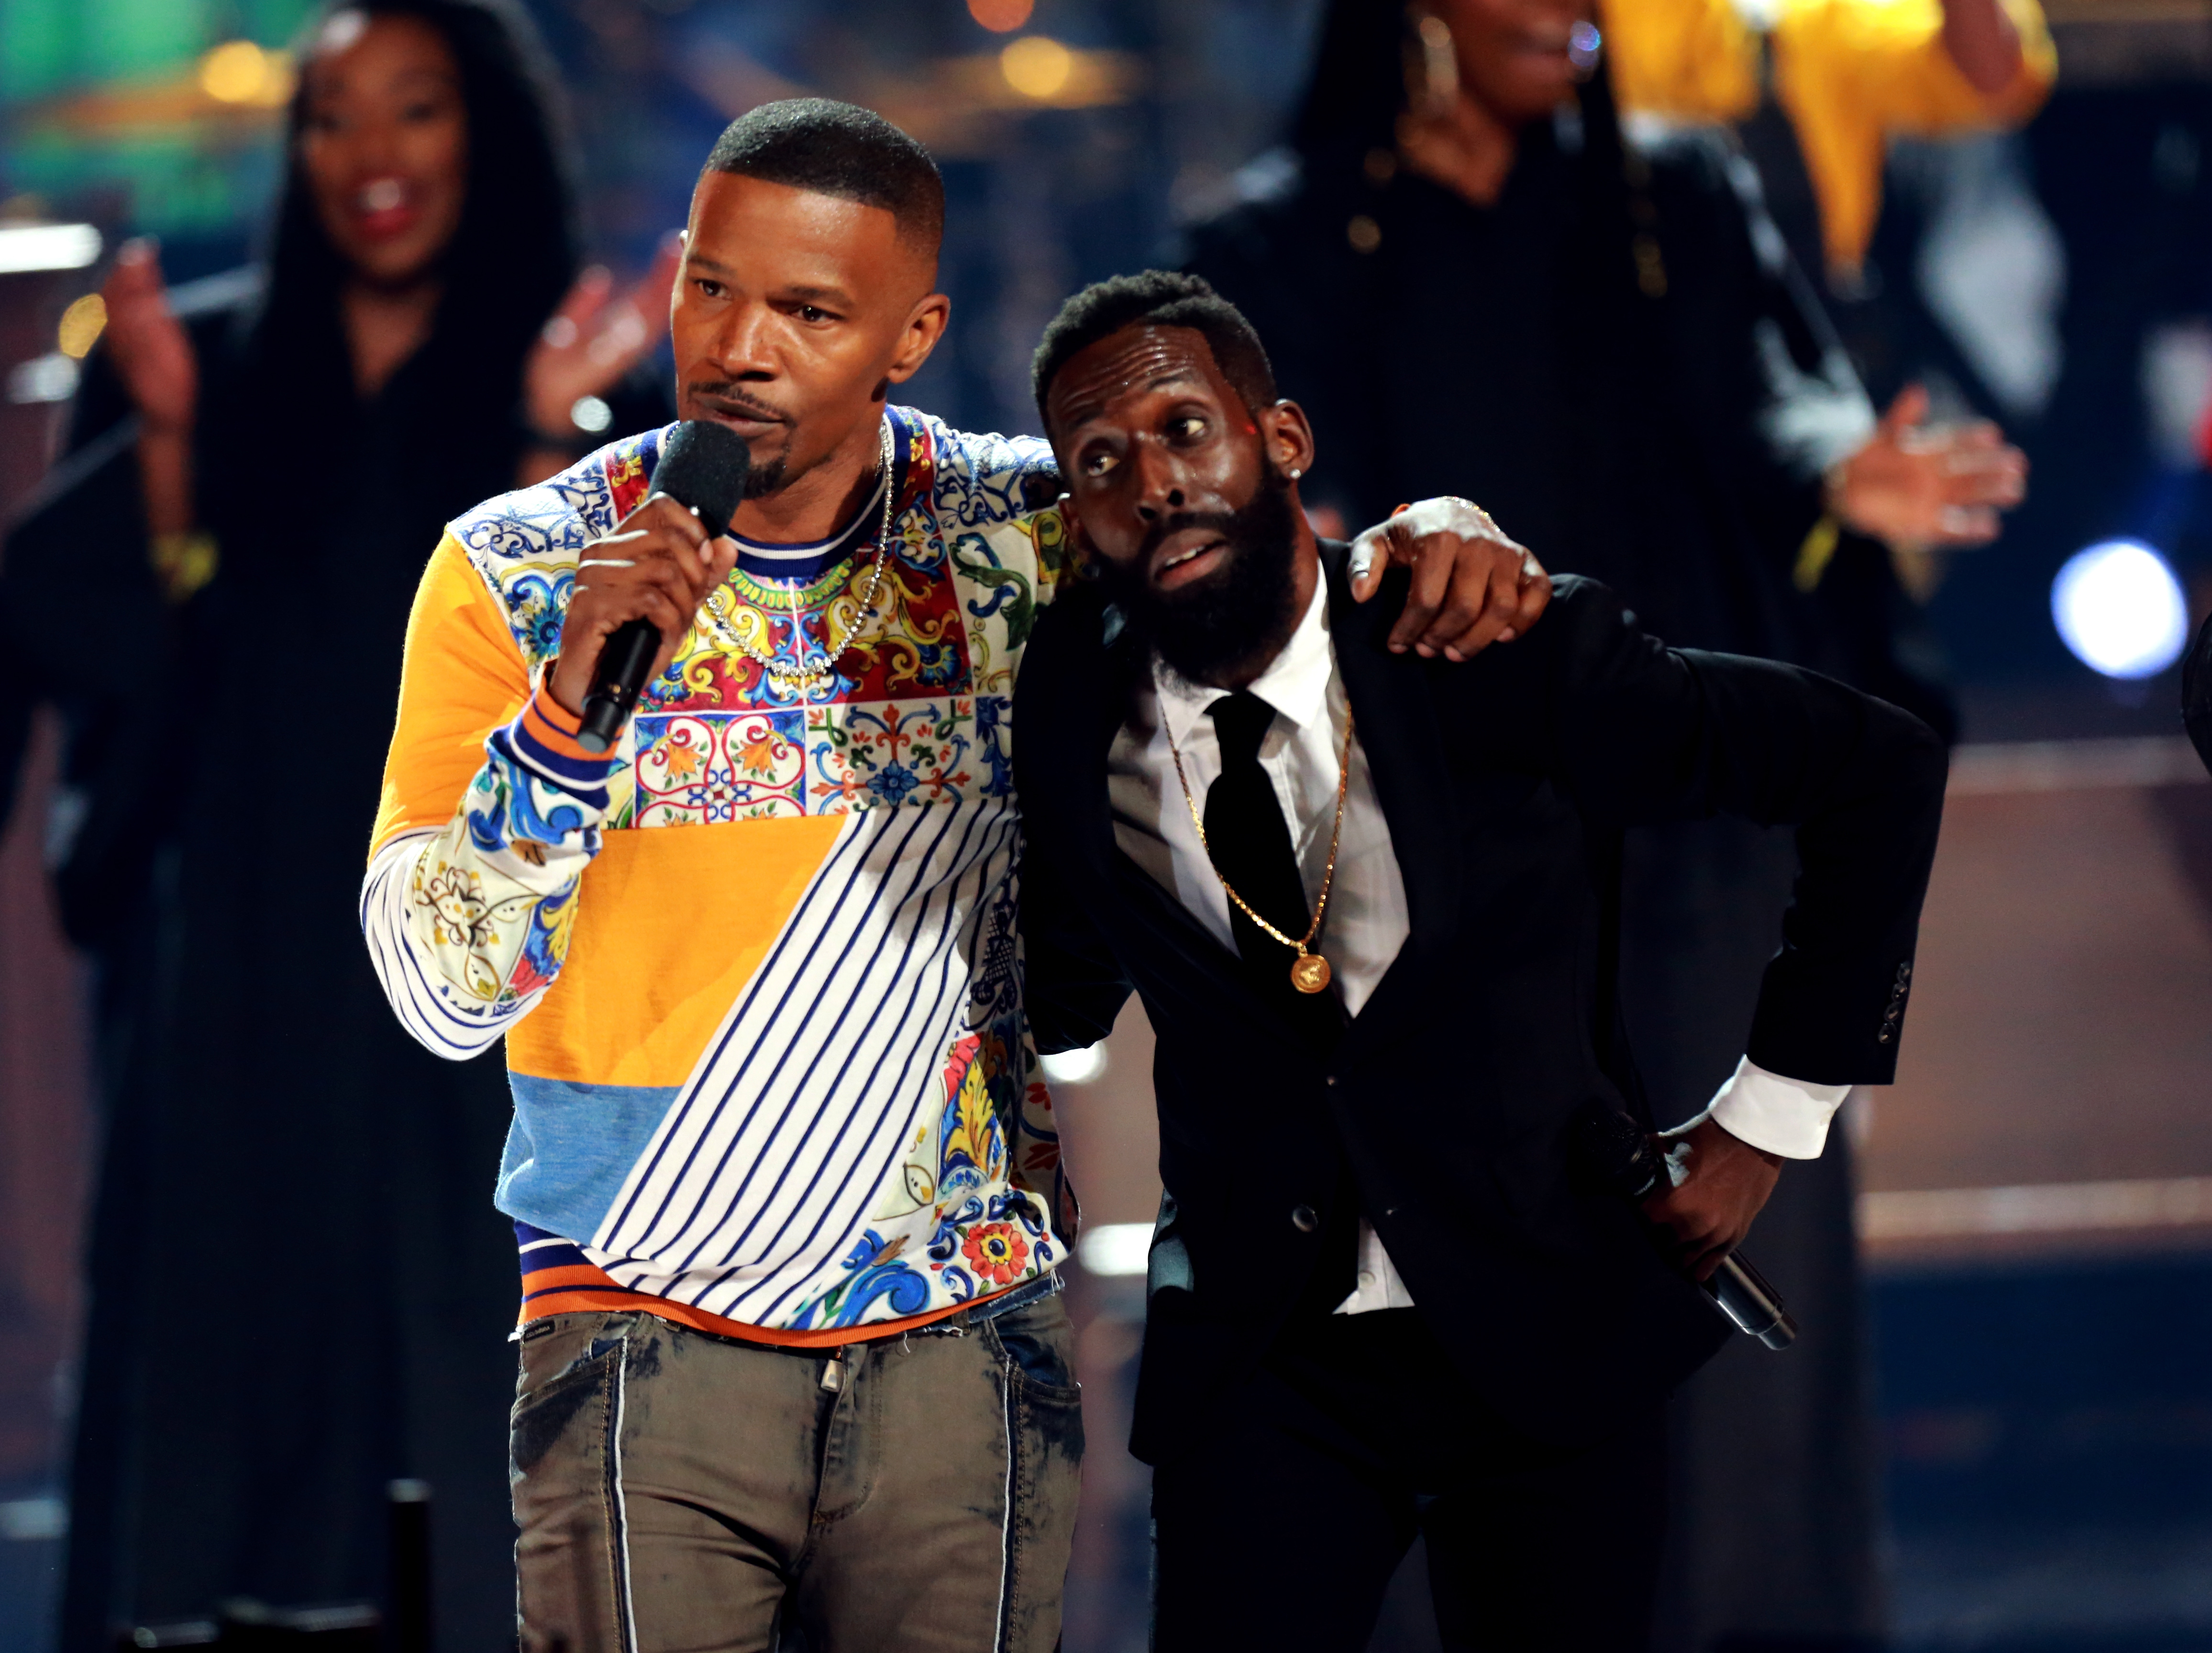 Jamie Foxx and Tye Tribbett speak onstage at the 2018 BET Awards at Microsoft Theater in Los Angeles, Calif. on June 24, 2018.